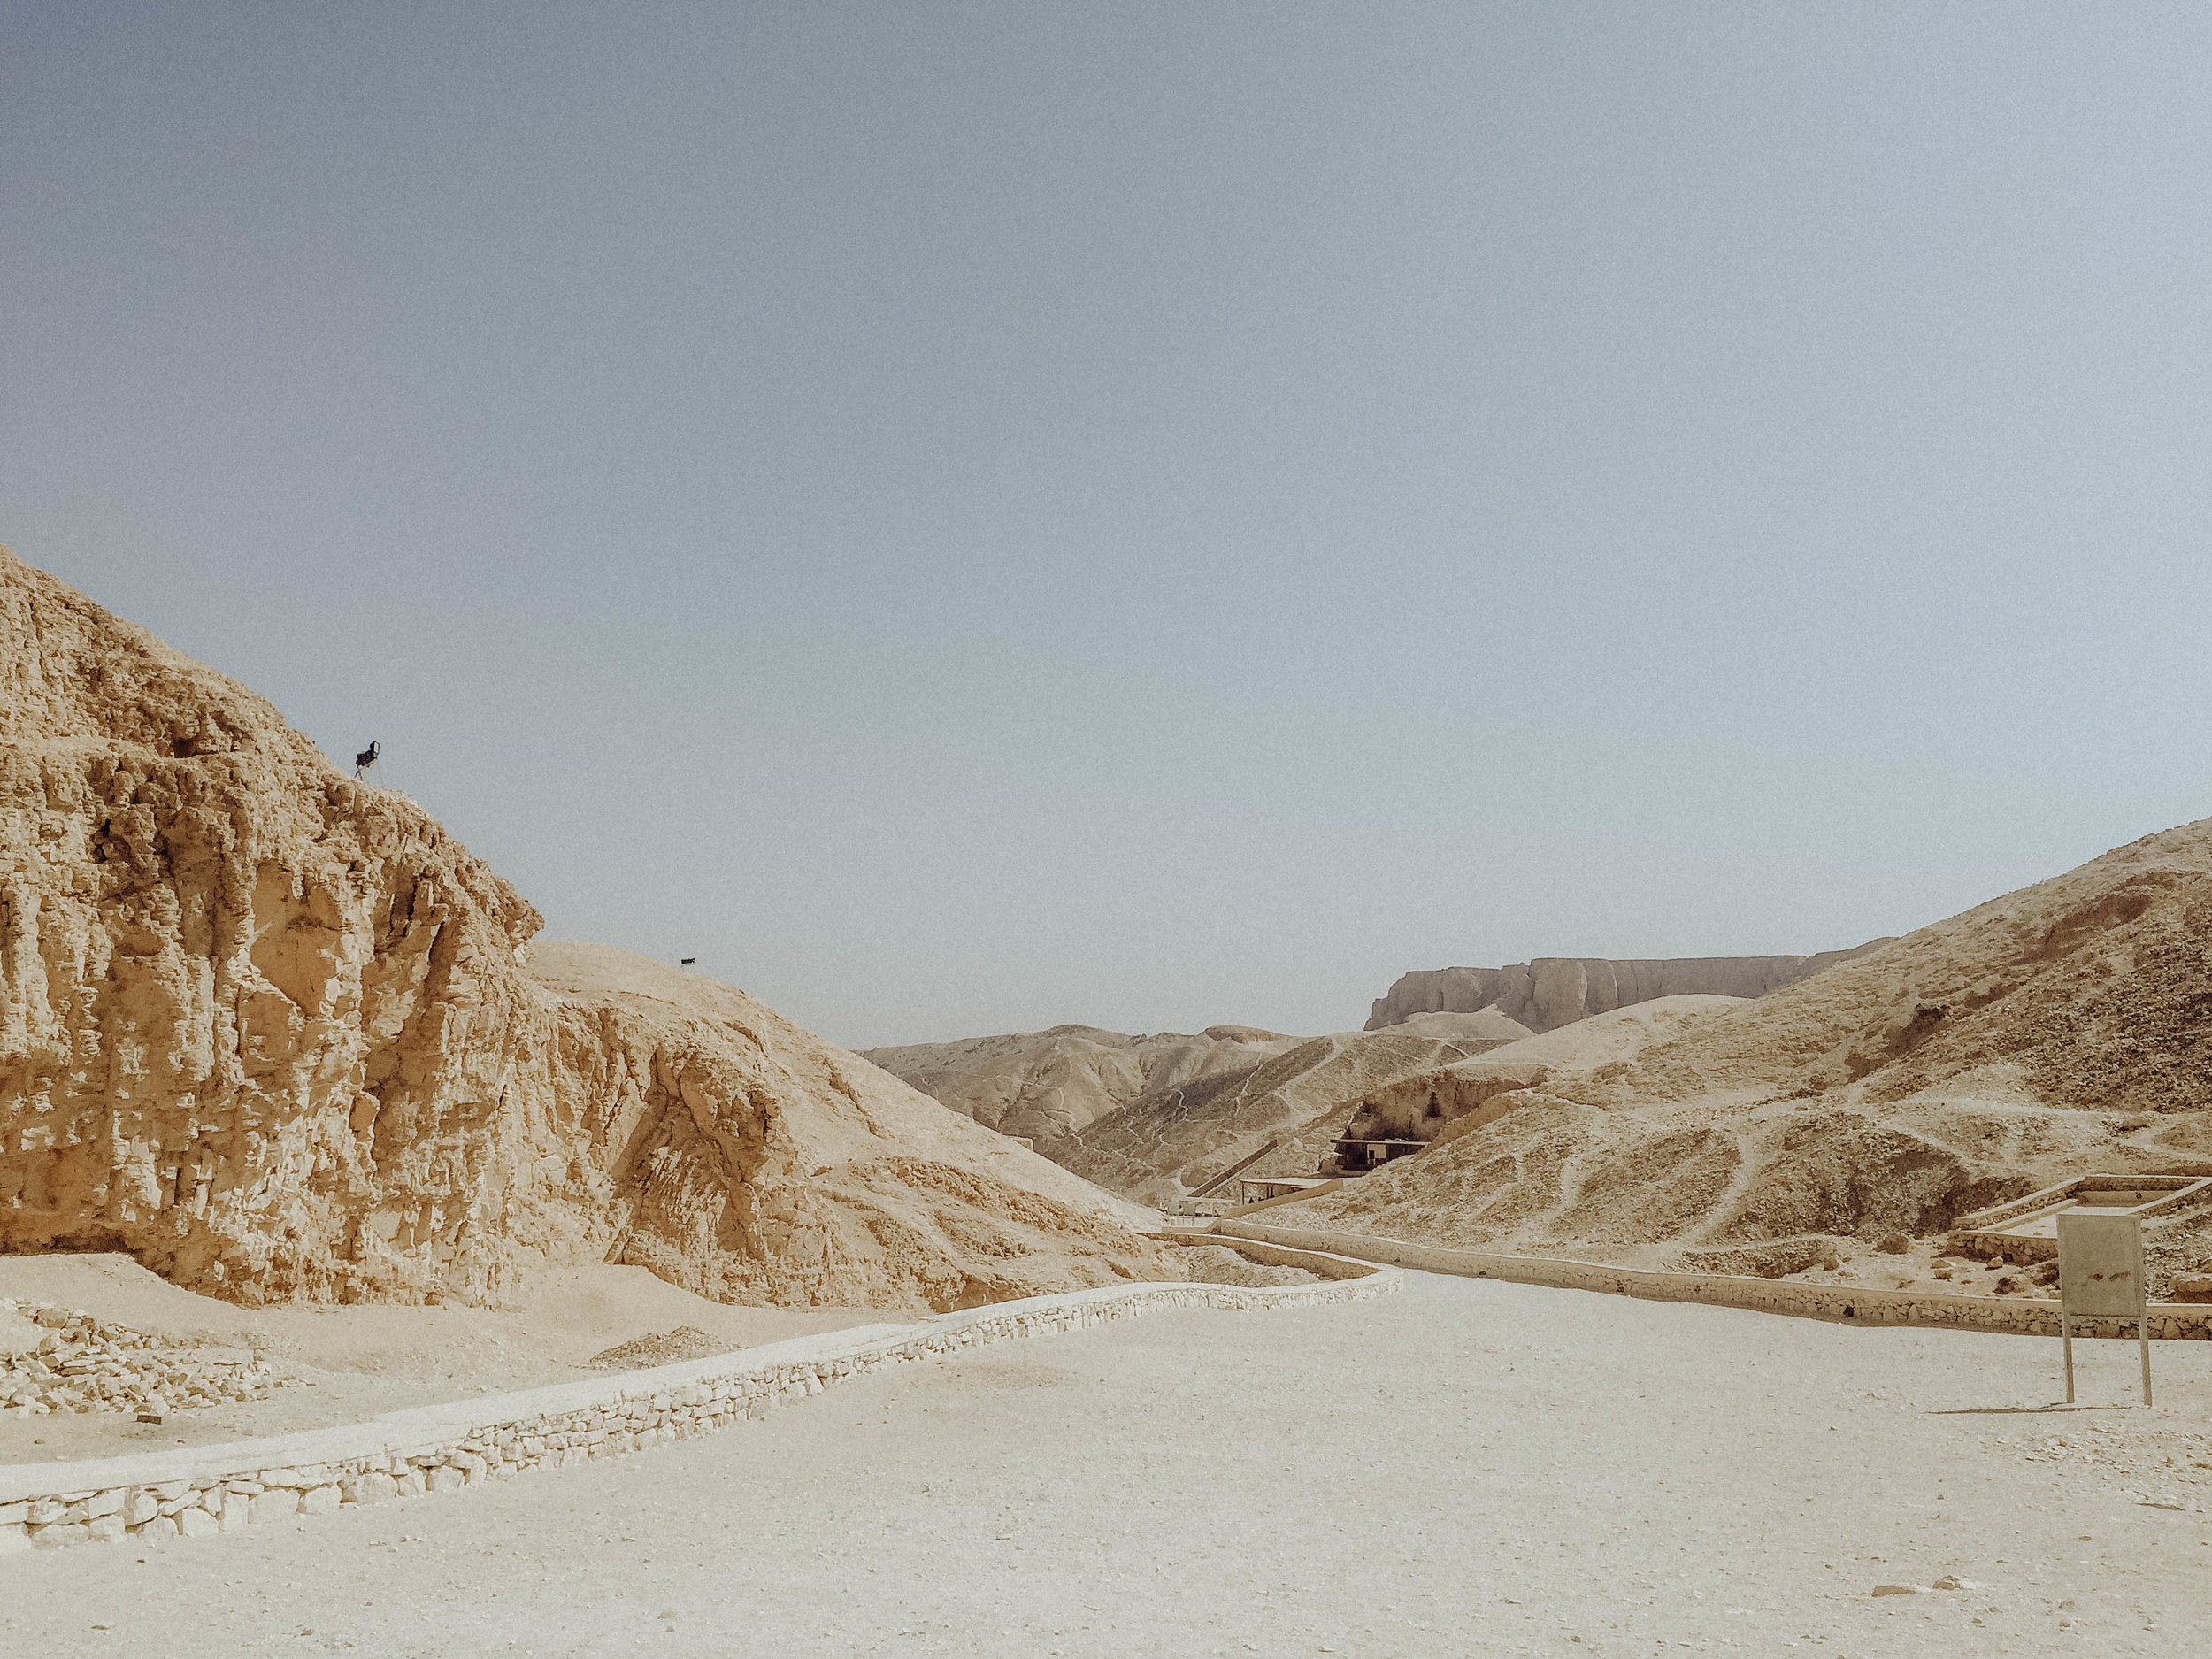 Valley of the Kings - It was located in the mountains and was cool but not as much as I thought it would be. Definitely go see it though, there are many tombs of various pharaohs you can enter.